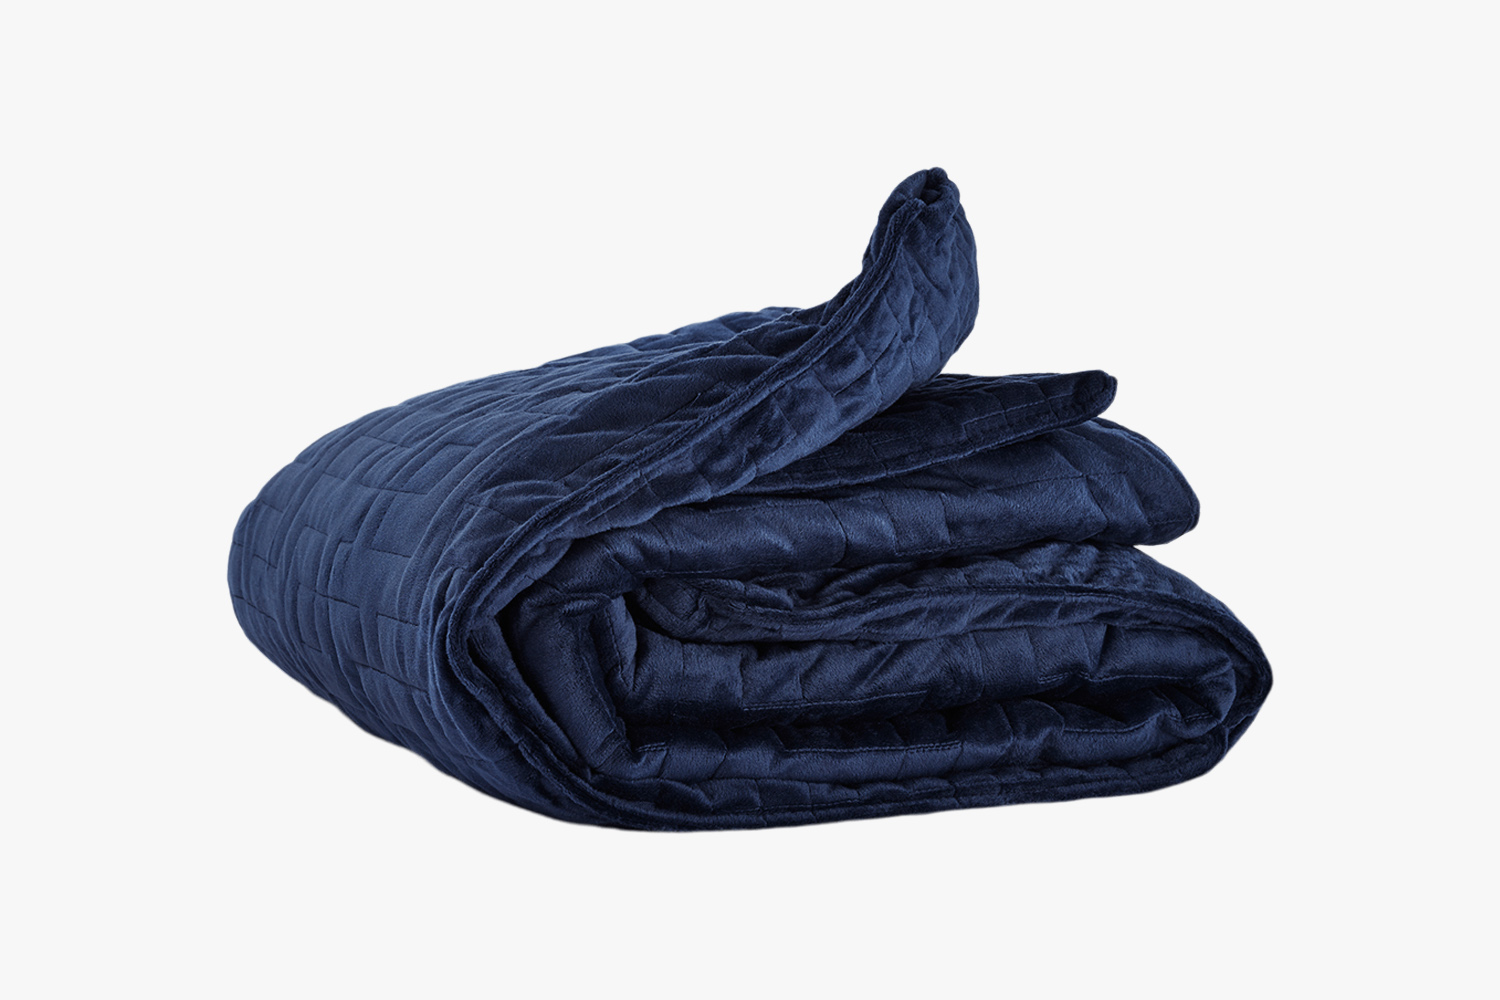 Blue Calming Blanket weighted blanket